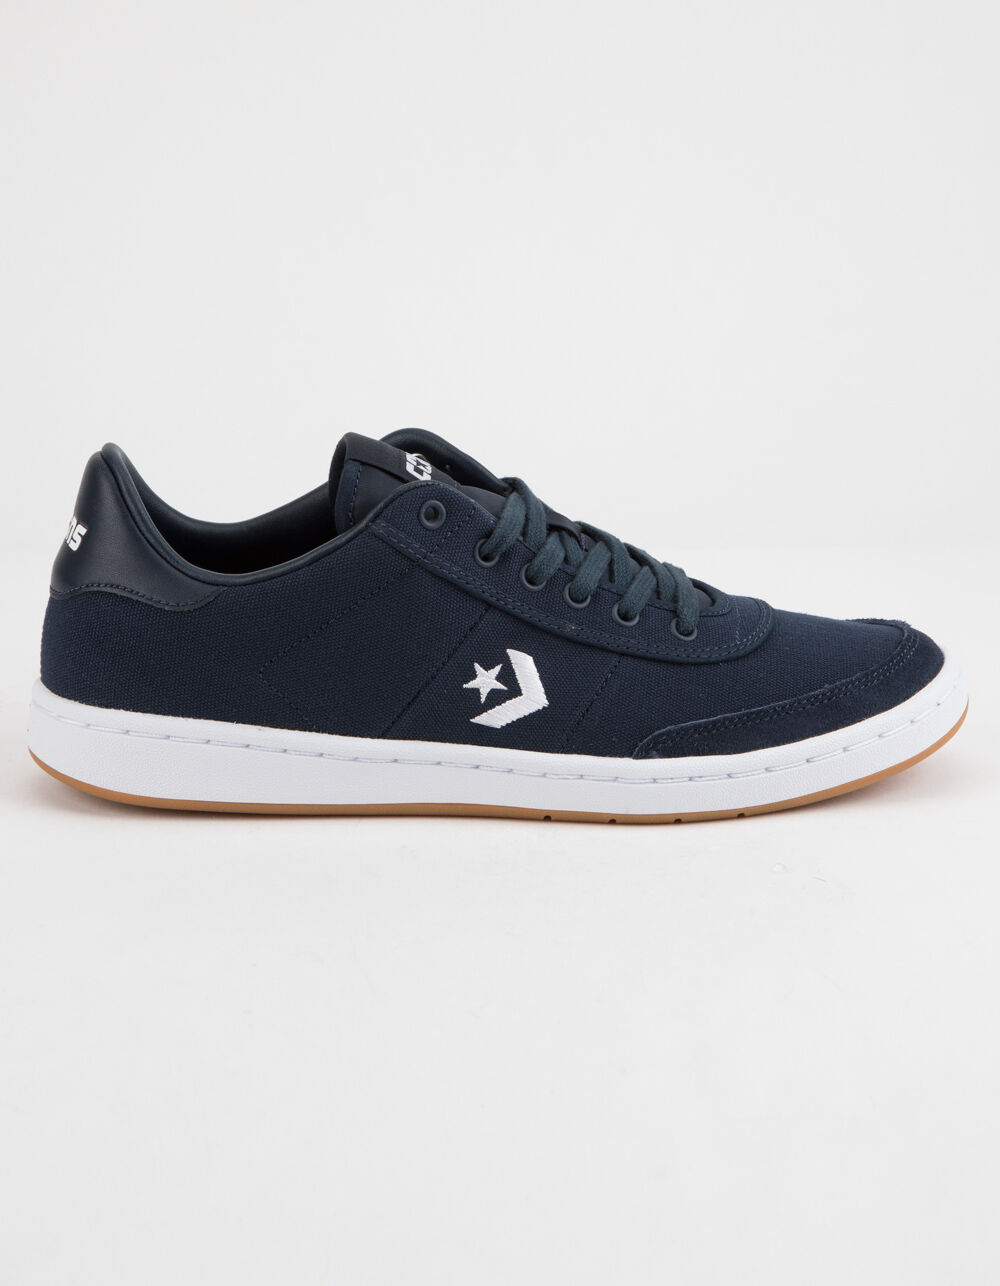 CONVERSE Barcelona Pro Low Top Obsidian & White Shoes